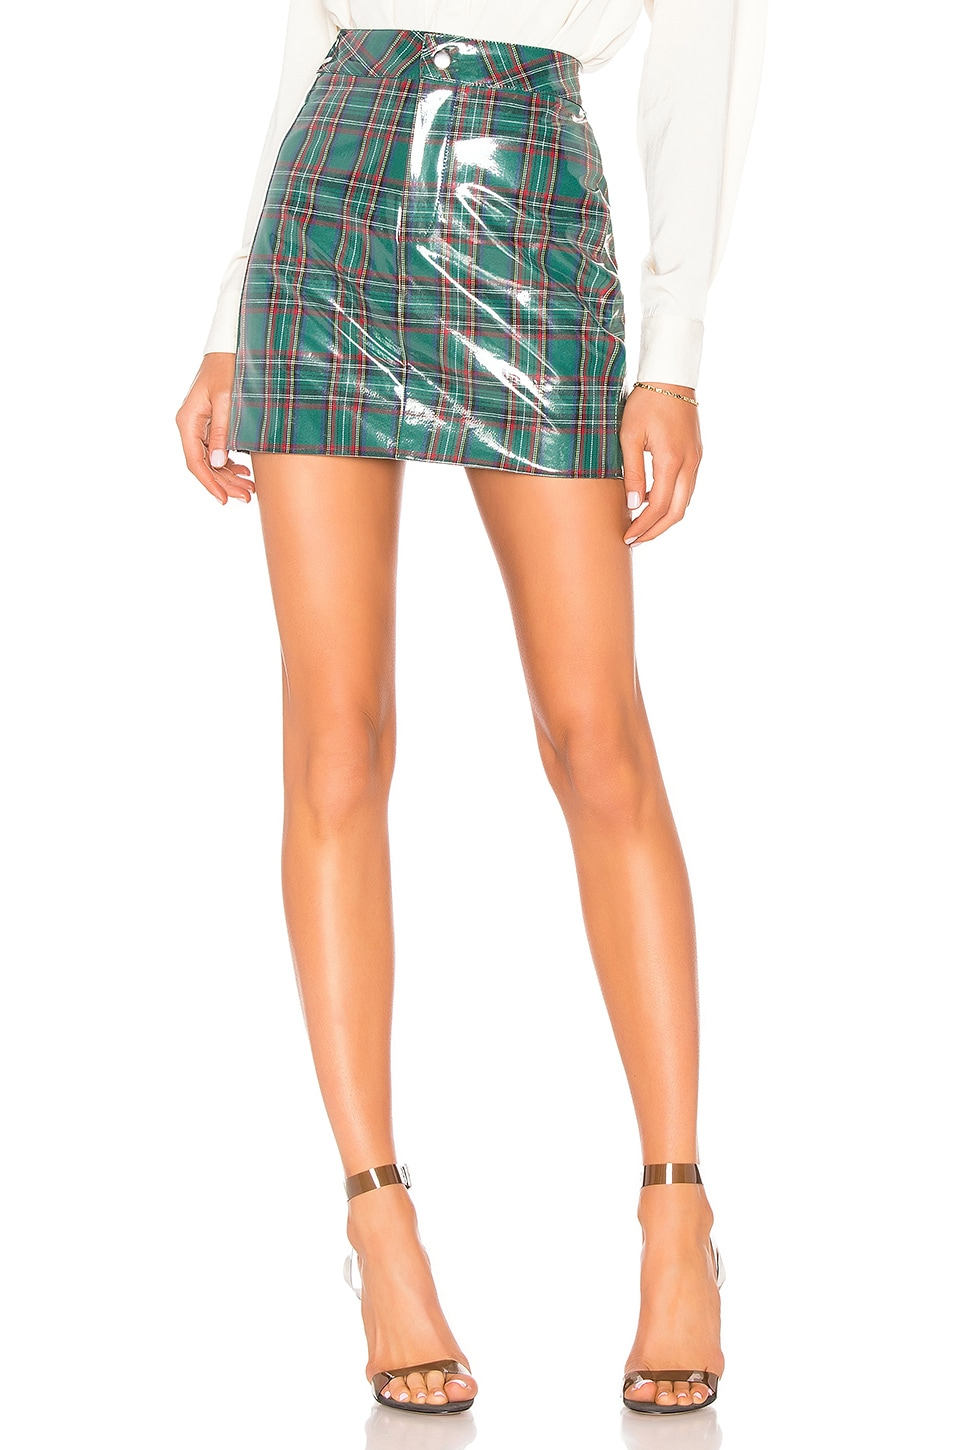 LPA Nicia Skirt in Green Plaid